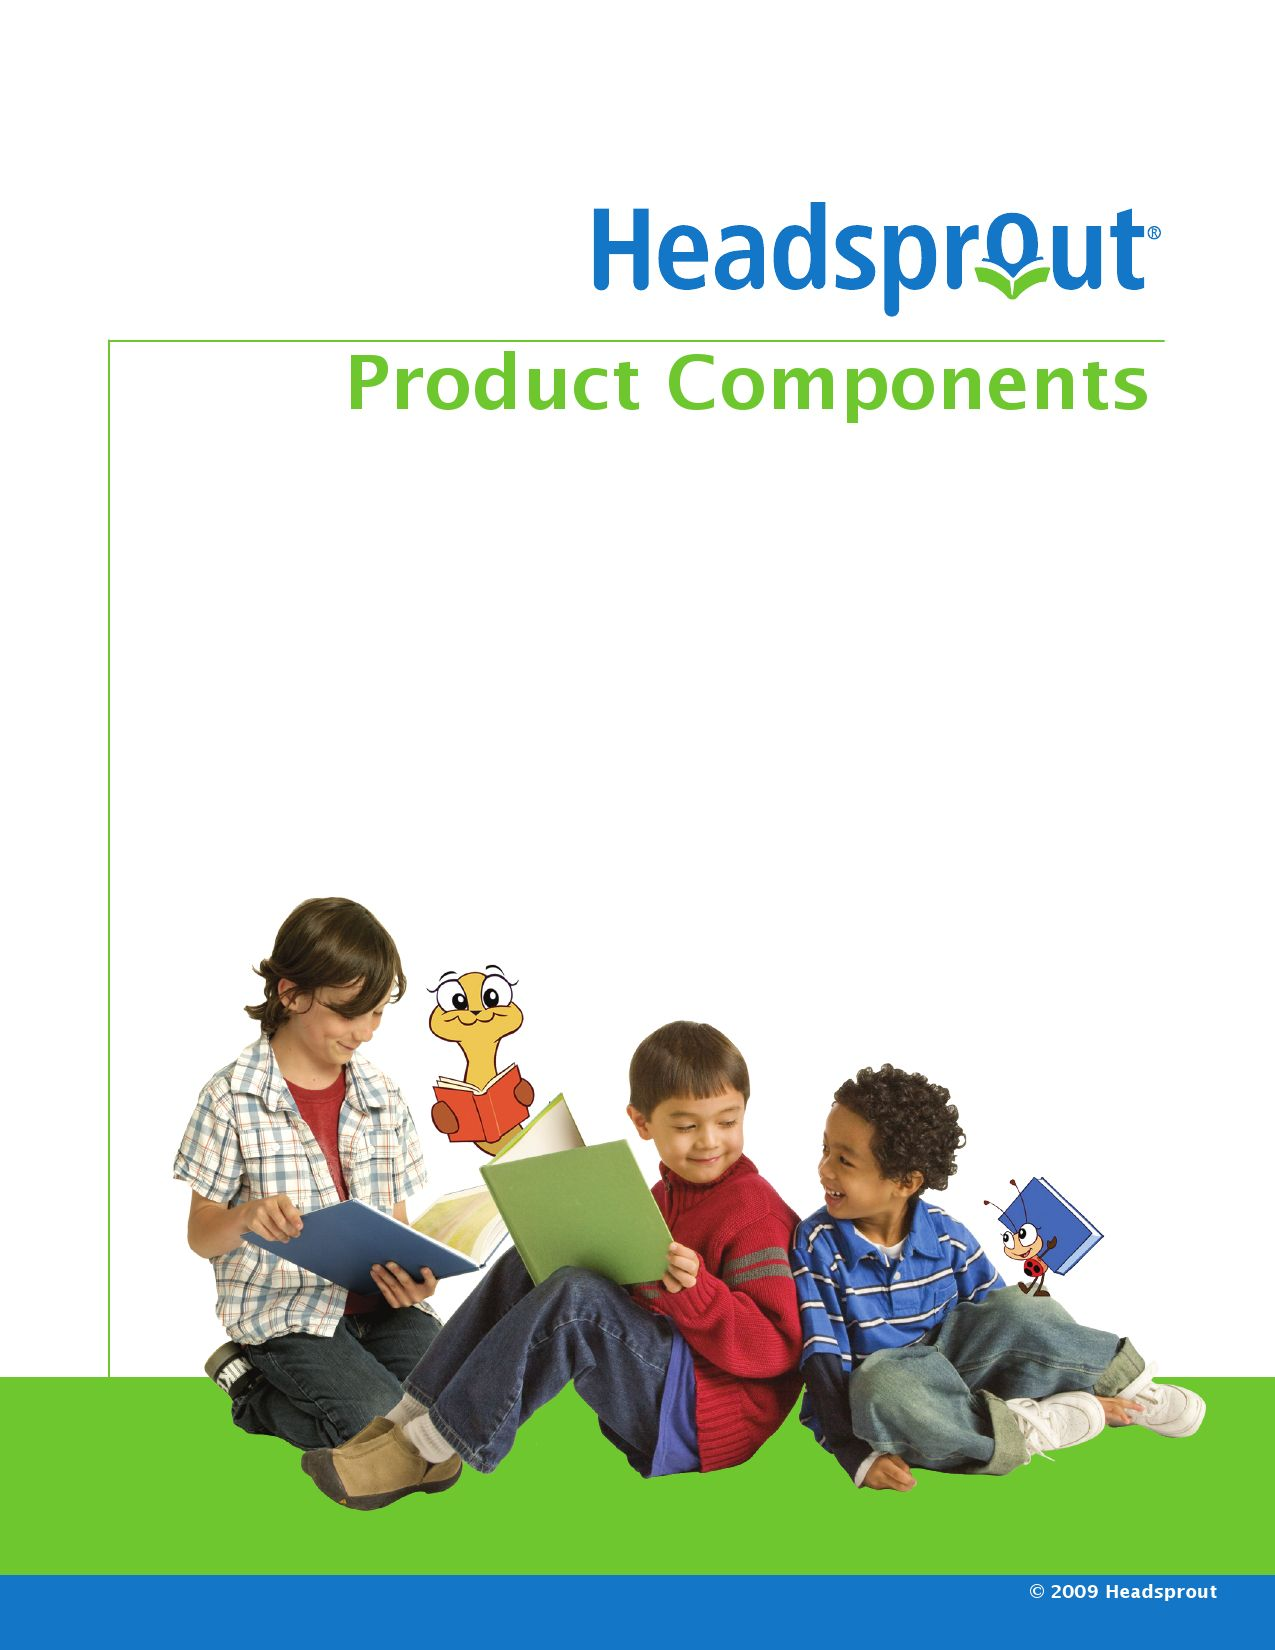 © LAZEL, Inc. All rights reserved. Learning A-Z, Headsprout, Raz-Kids, Raz-Plus, and Science A-Z are registered trademarks of LAZEL, Inc. Reading A-Z, ReadyTest.